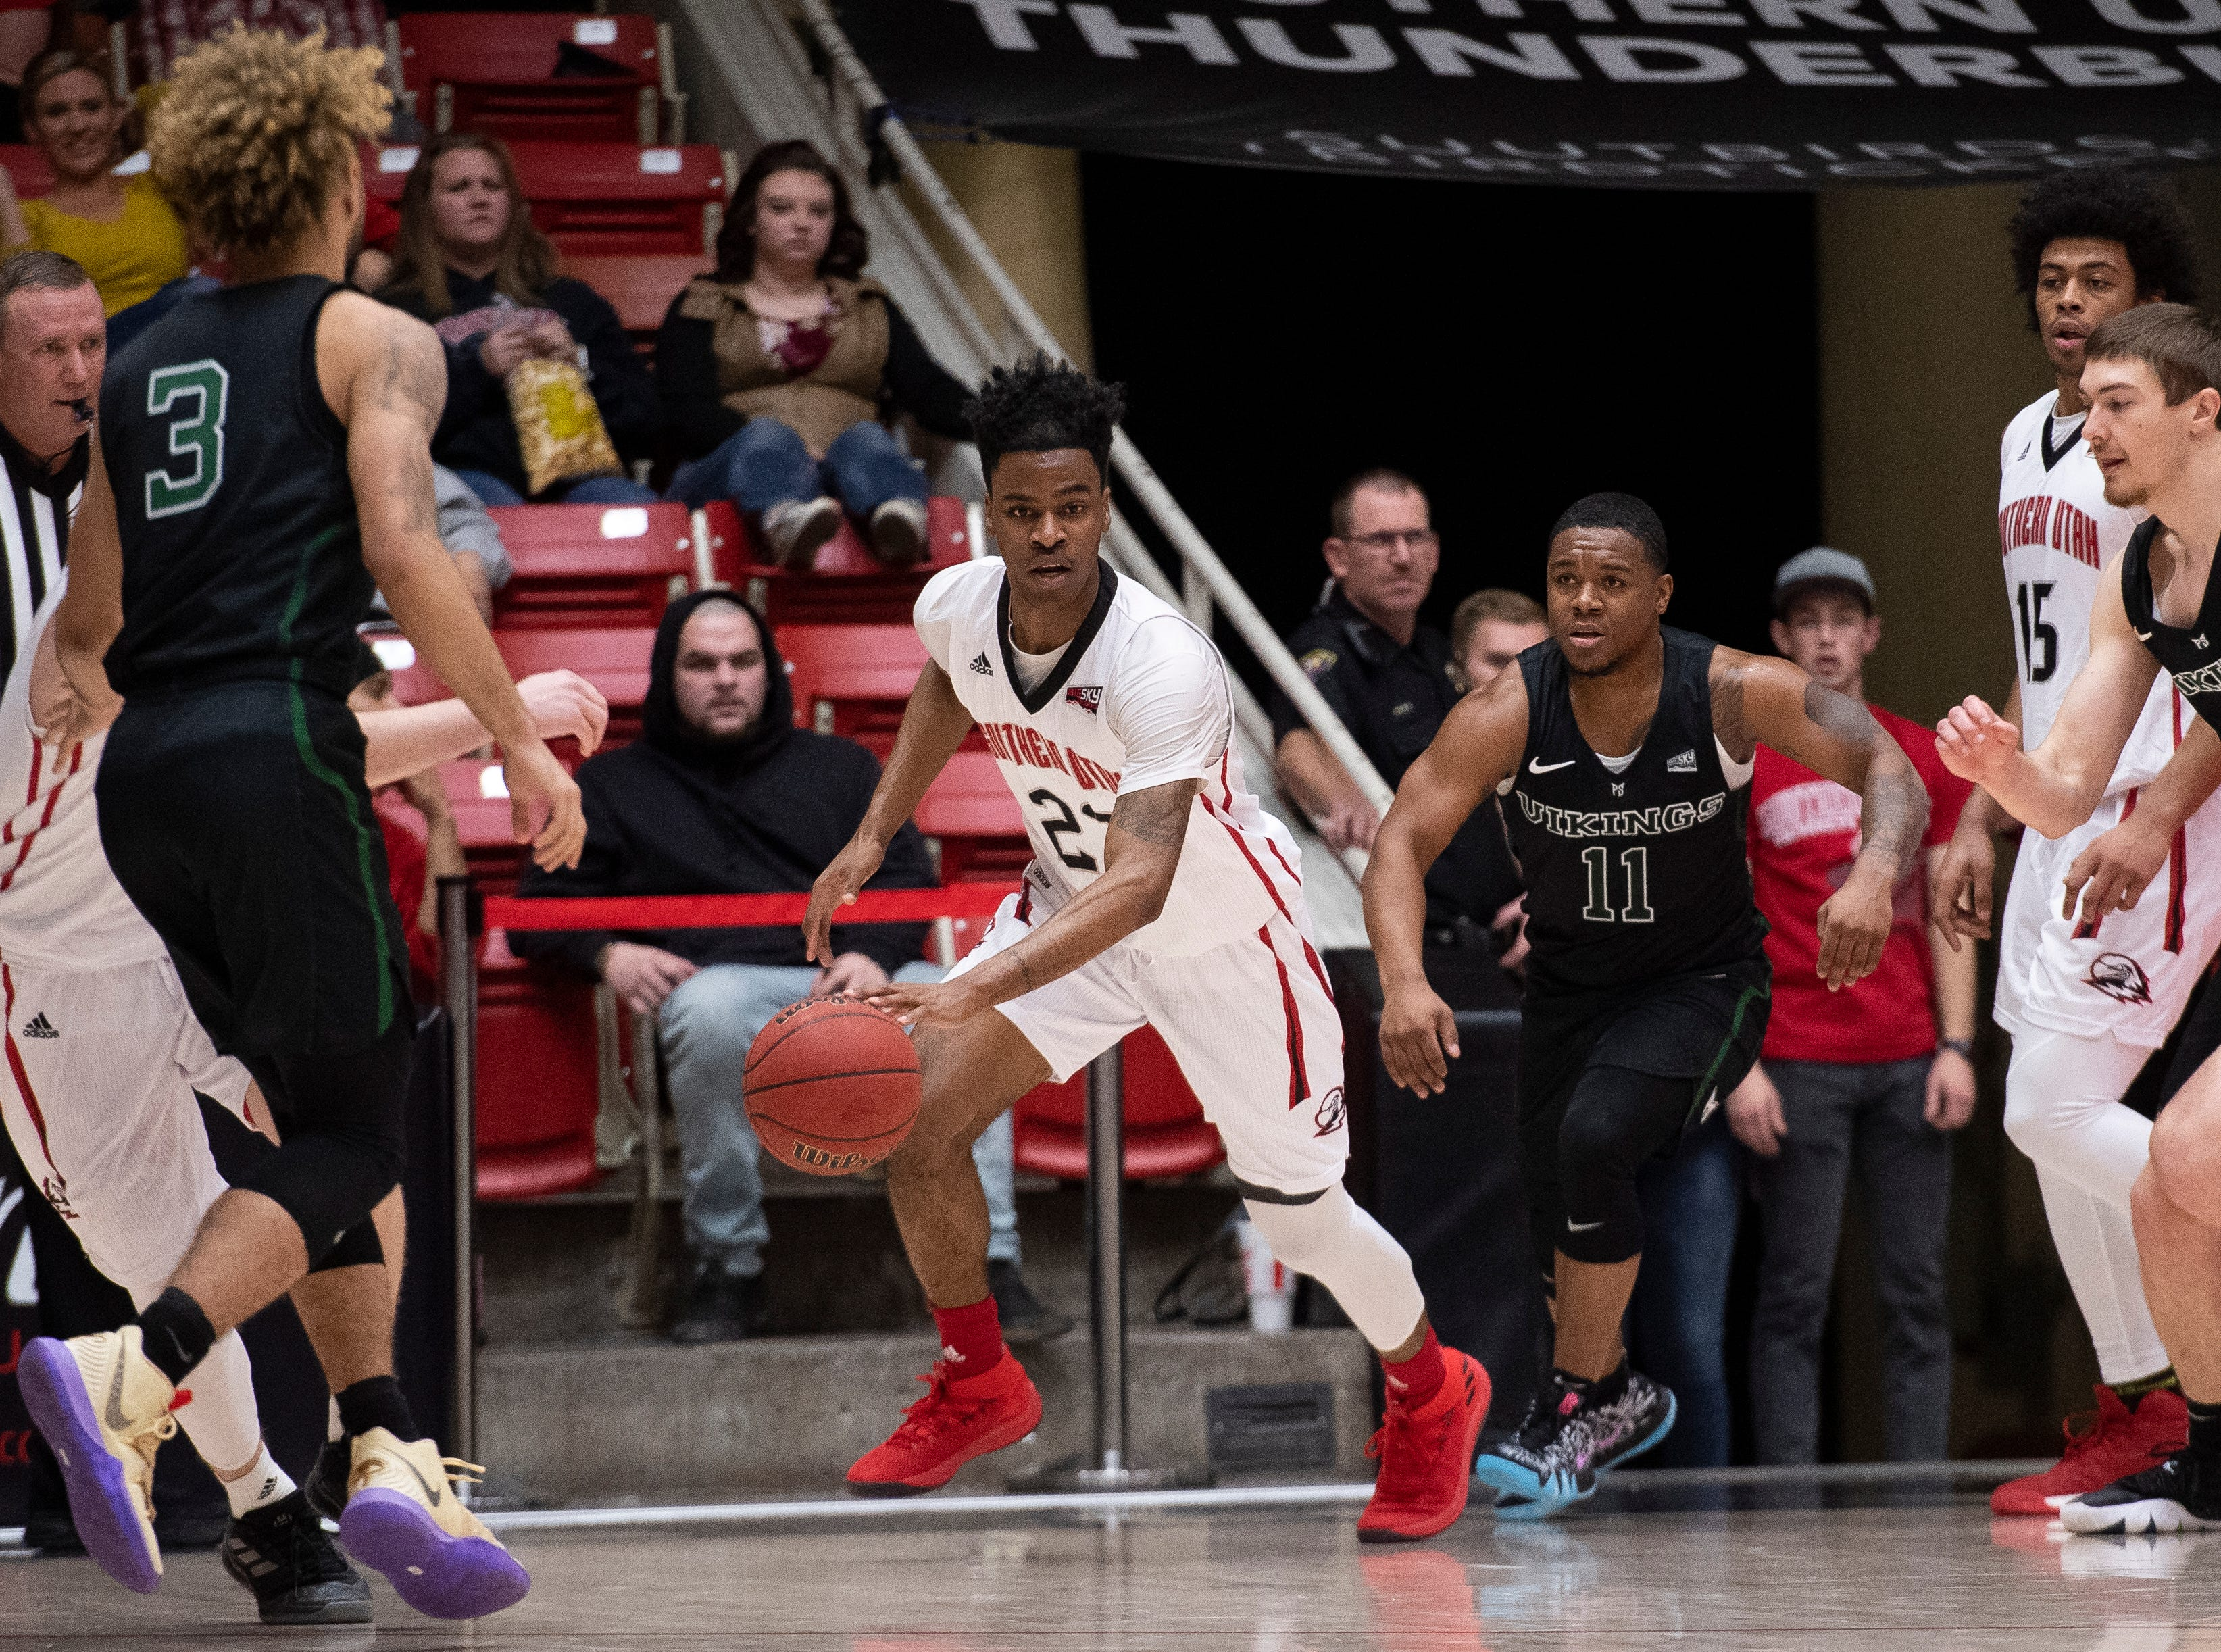 Southern Utah University plays against Portland State in the America First Event Center Thursday, January 17, 2019. SUU won, 83-69.